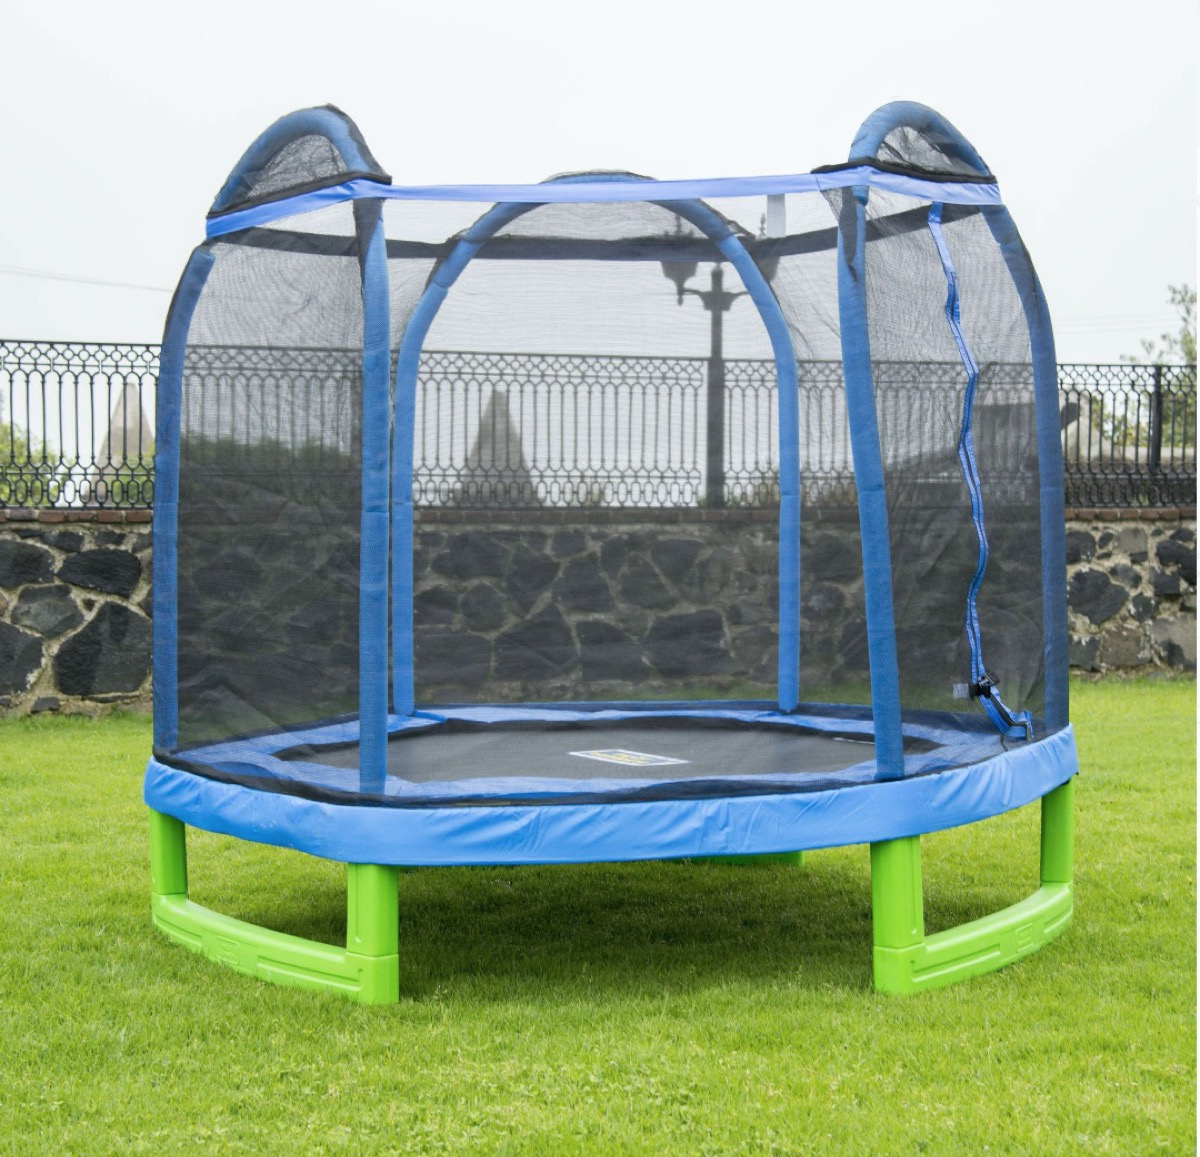 blue and green trampoline in yard